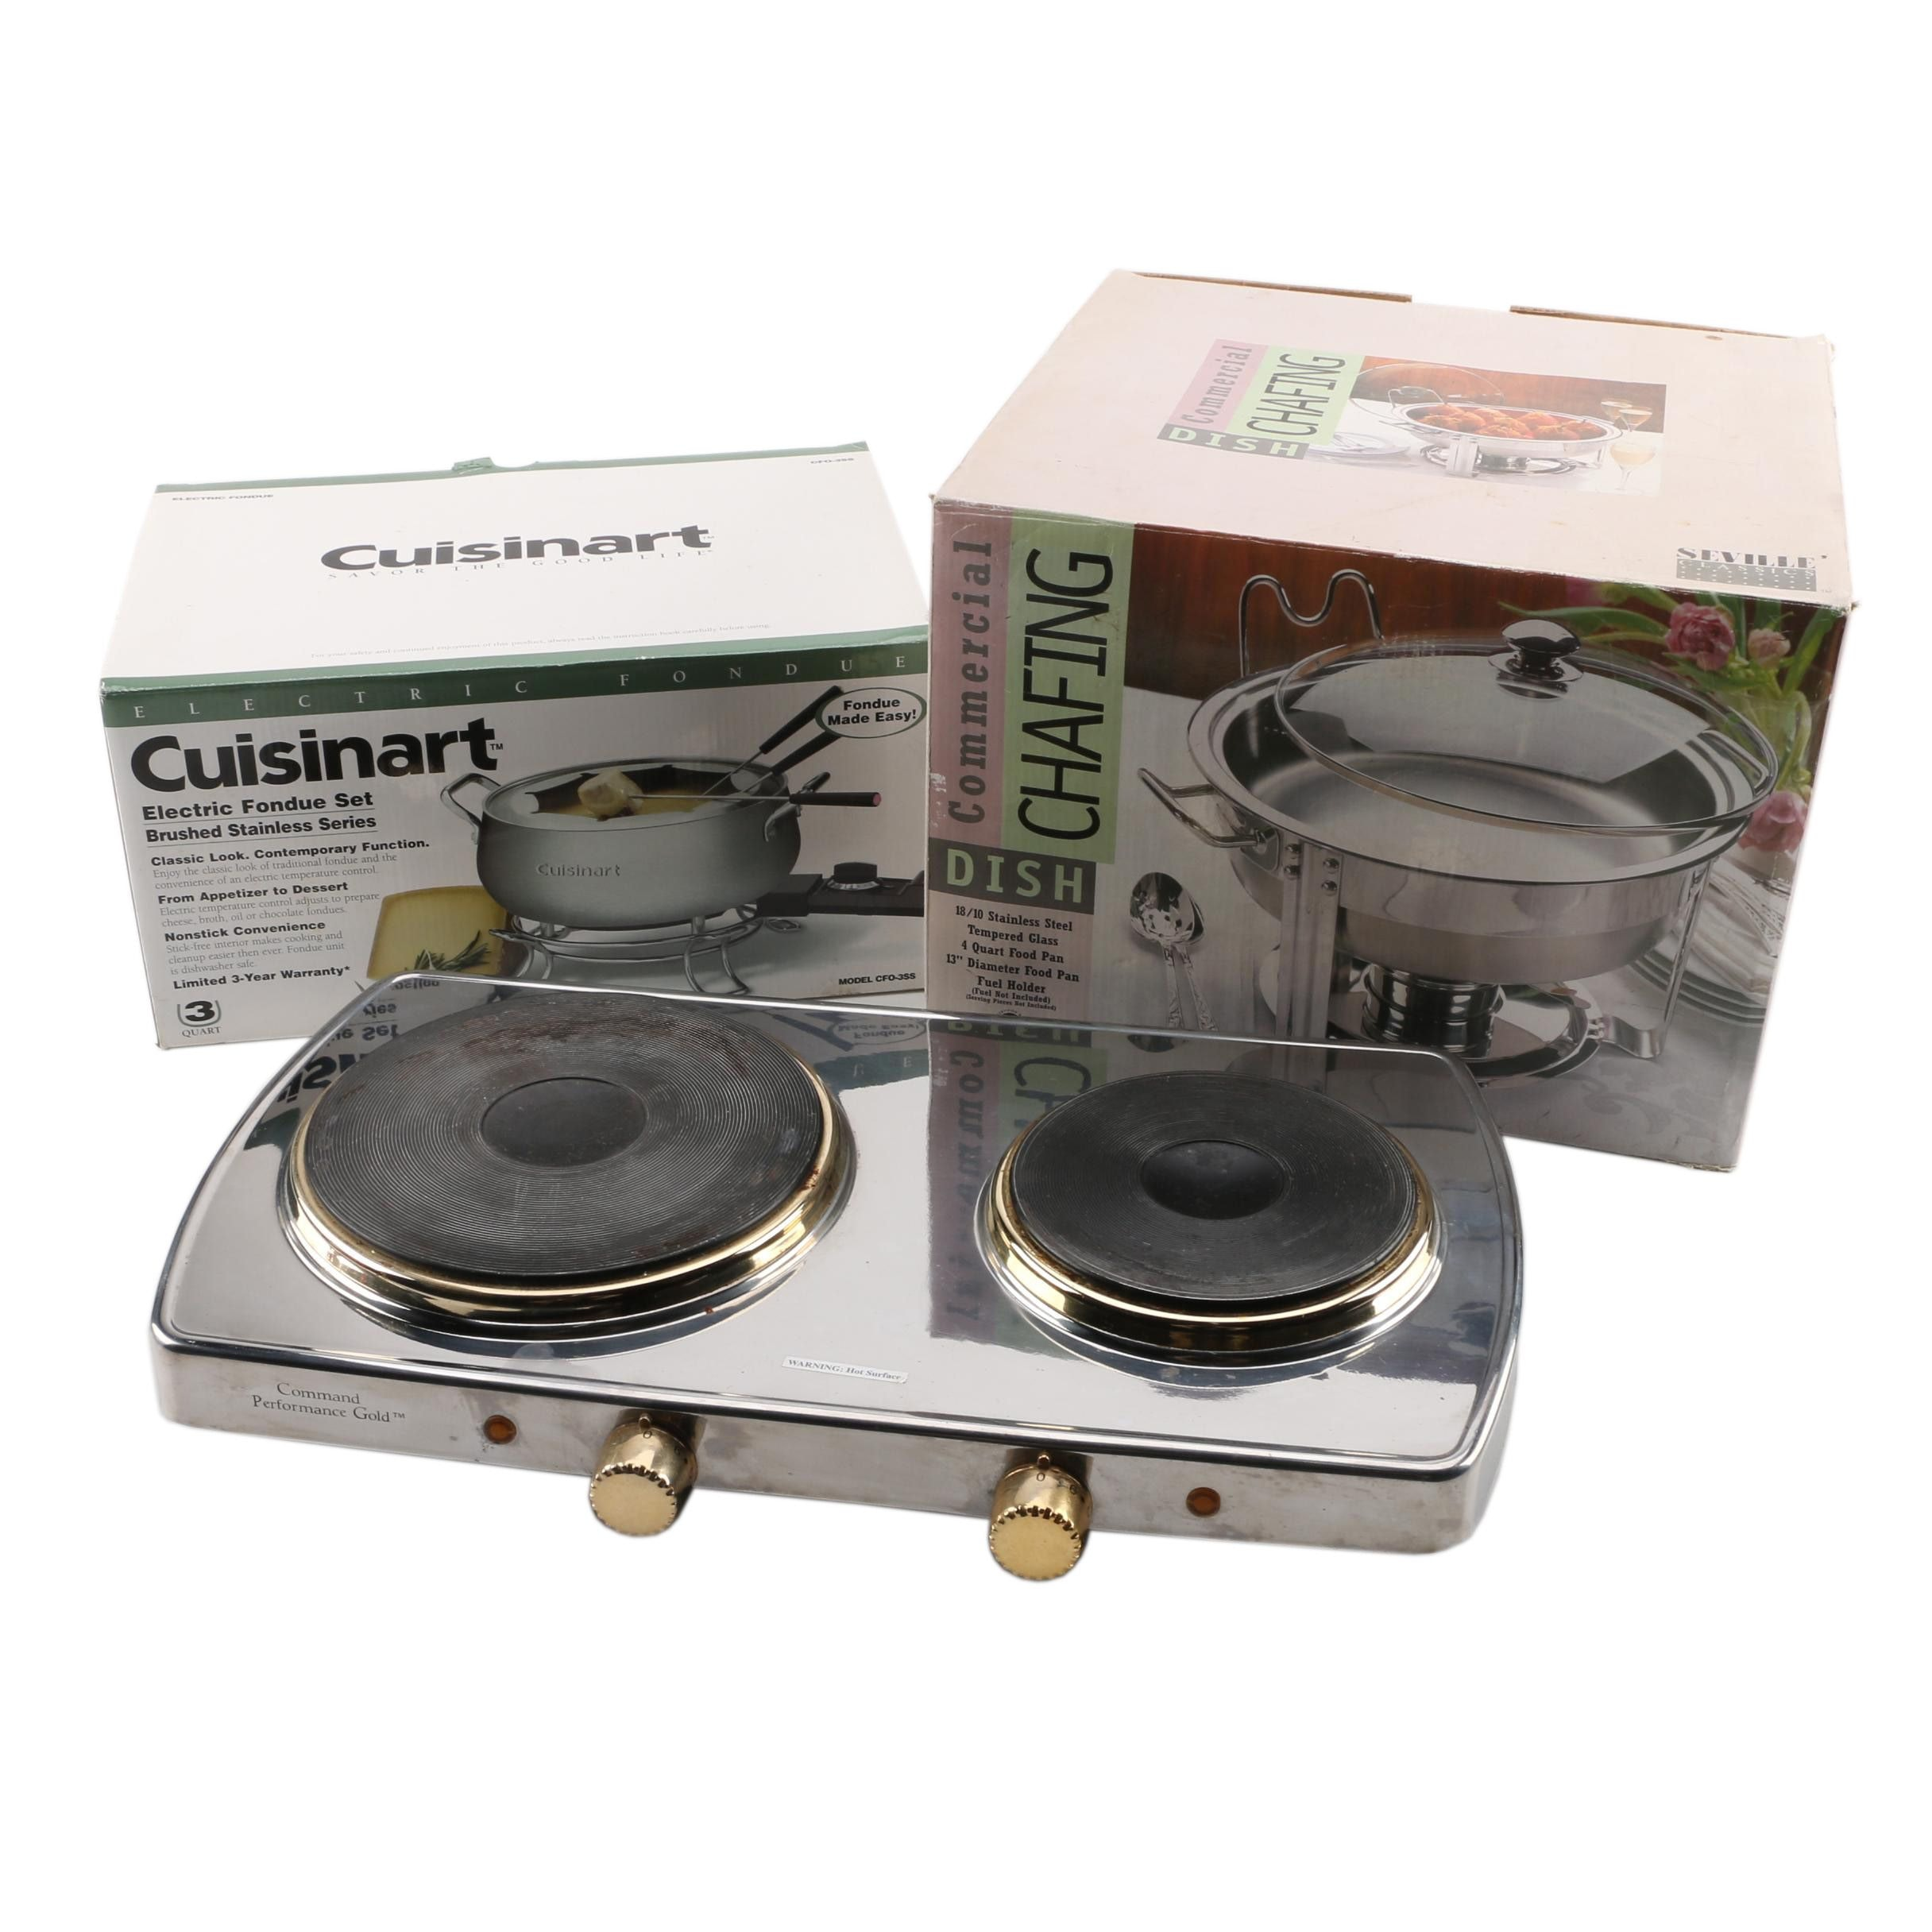 Cuisinart Fondue Set, Command Performance Hot Plate and Chafing Dish